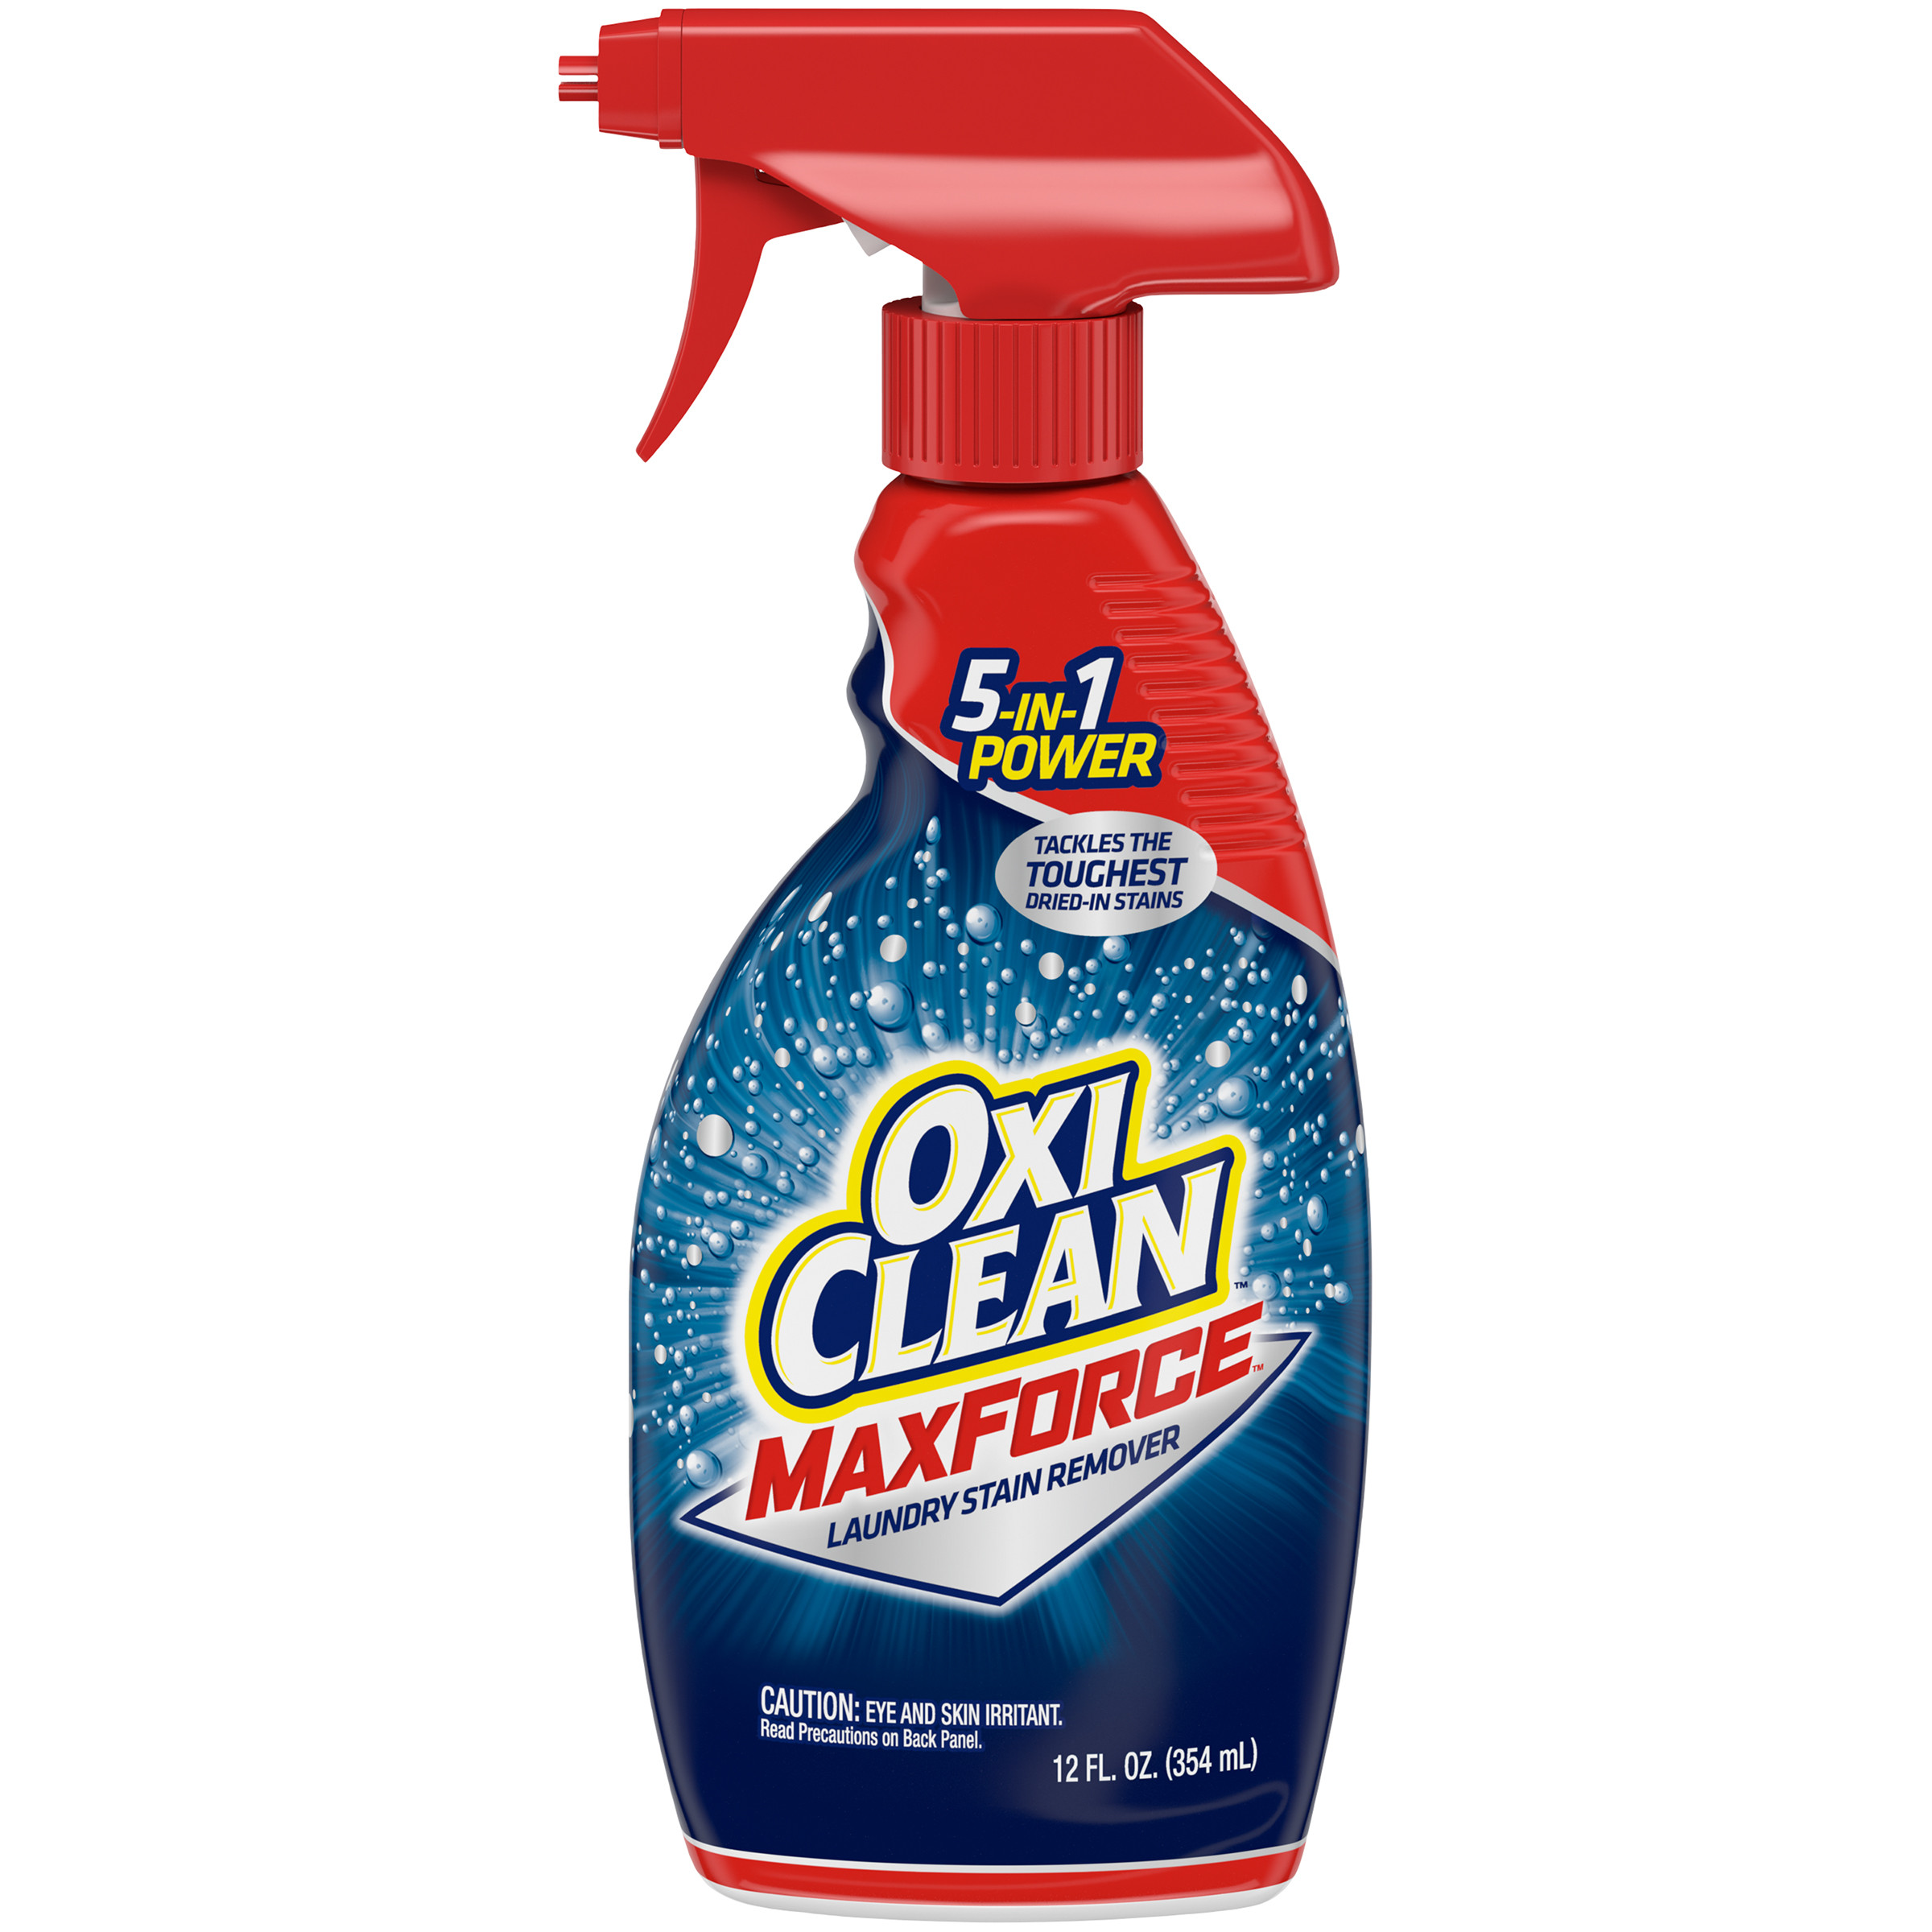 Oxiclean Maxforce Laundry Stain Remover Spray 12 Fl Oz